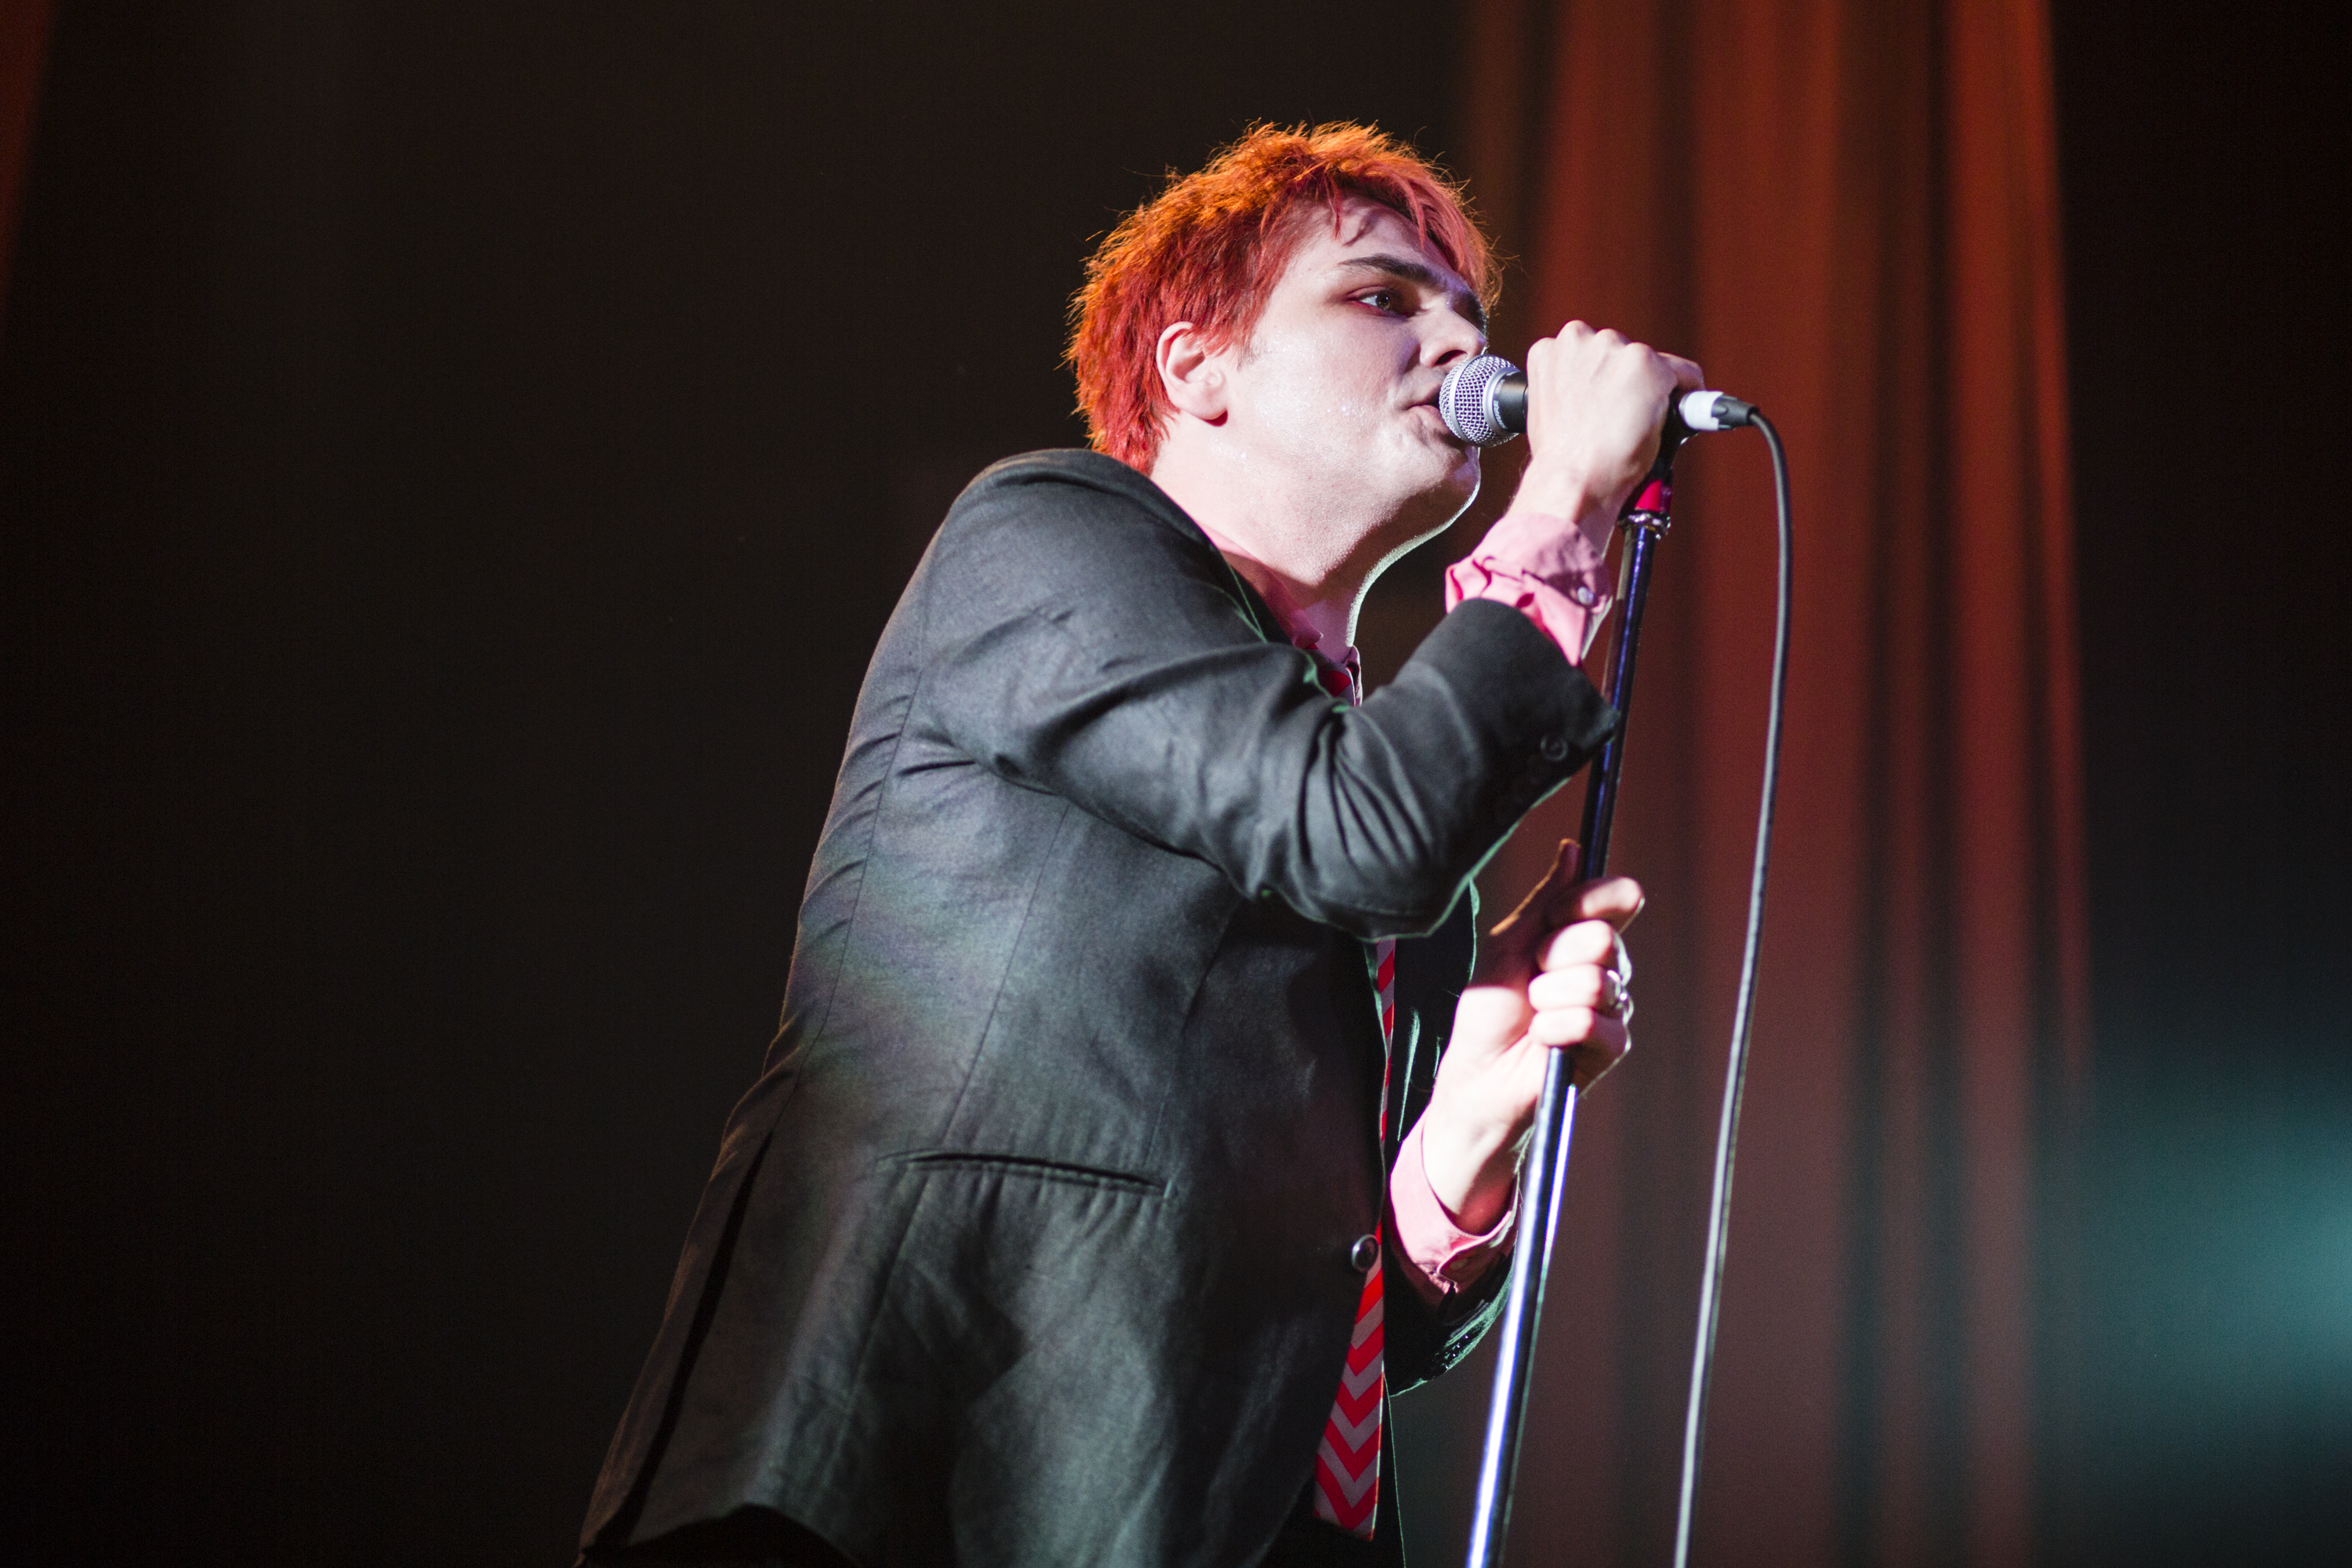 Gerard Way Performs At The Ritz In Manchester